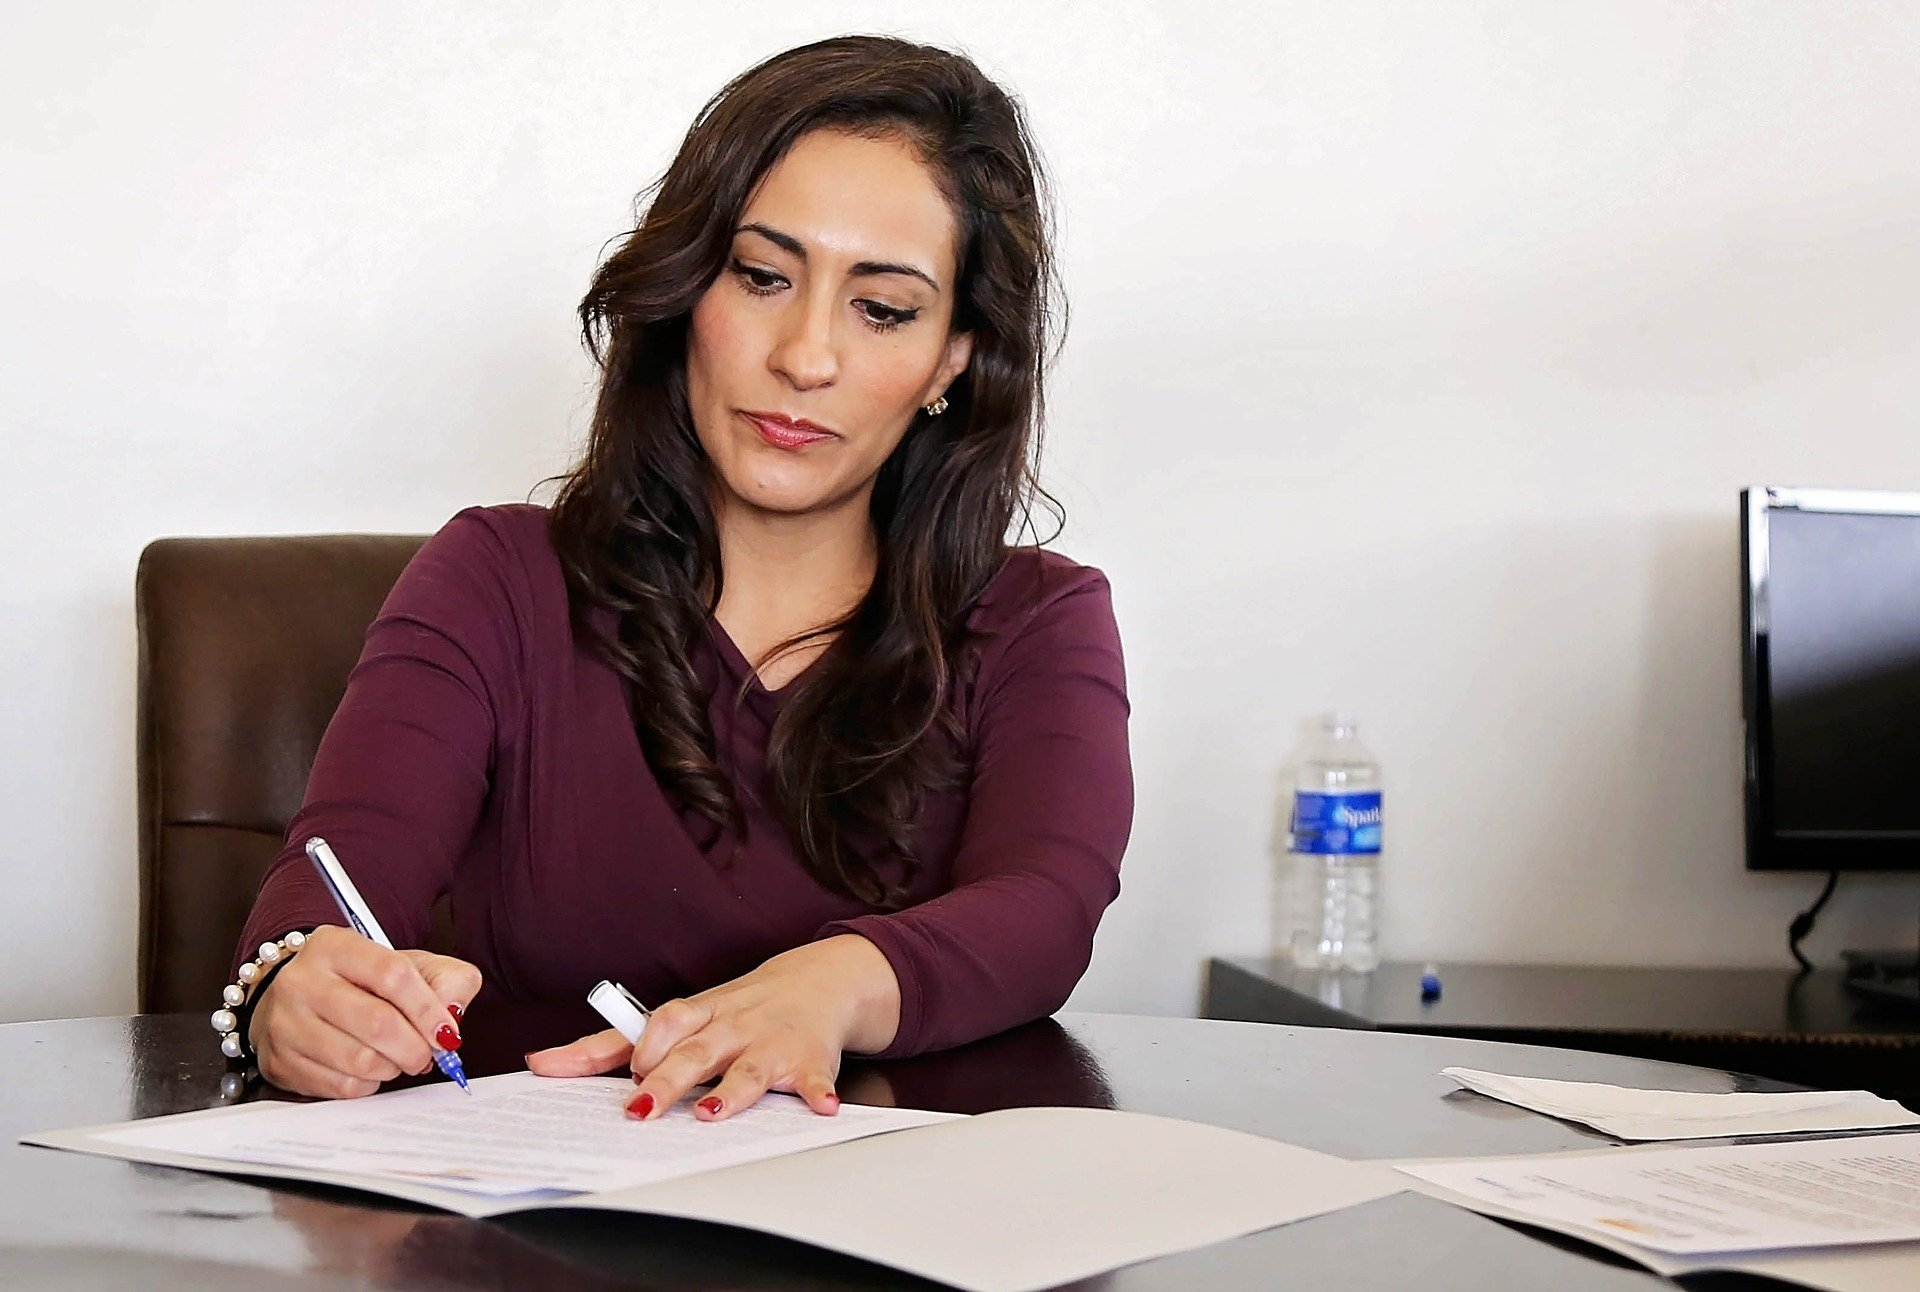 5 Things Female Entrepreneurs Need to Know About Grants